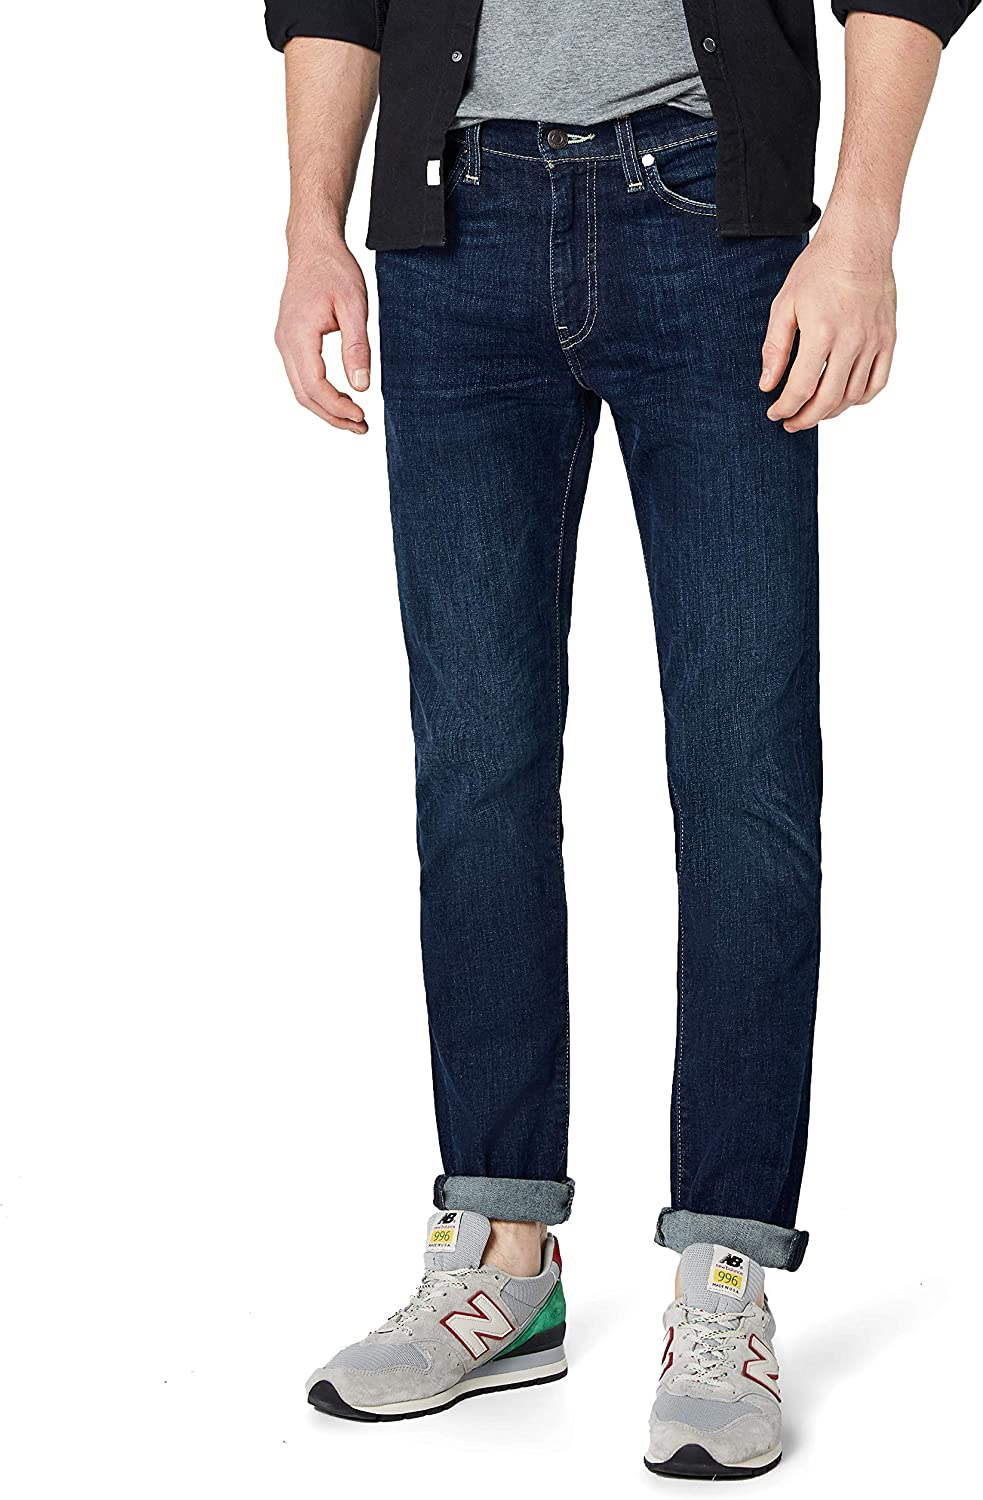 Levi's 511 Slim Fit Rain Shower Jeans para Hombre